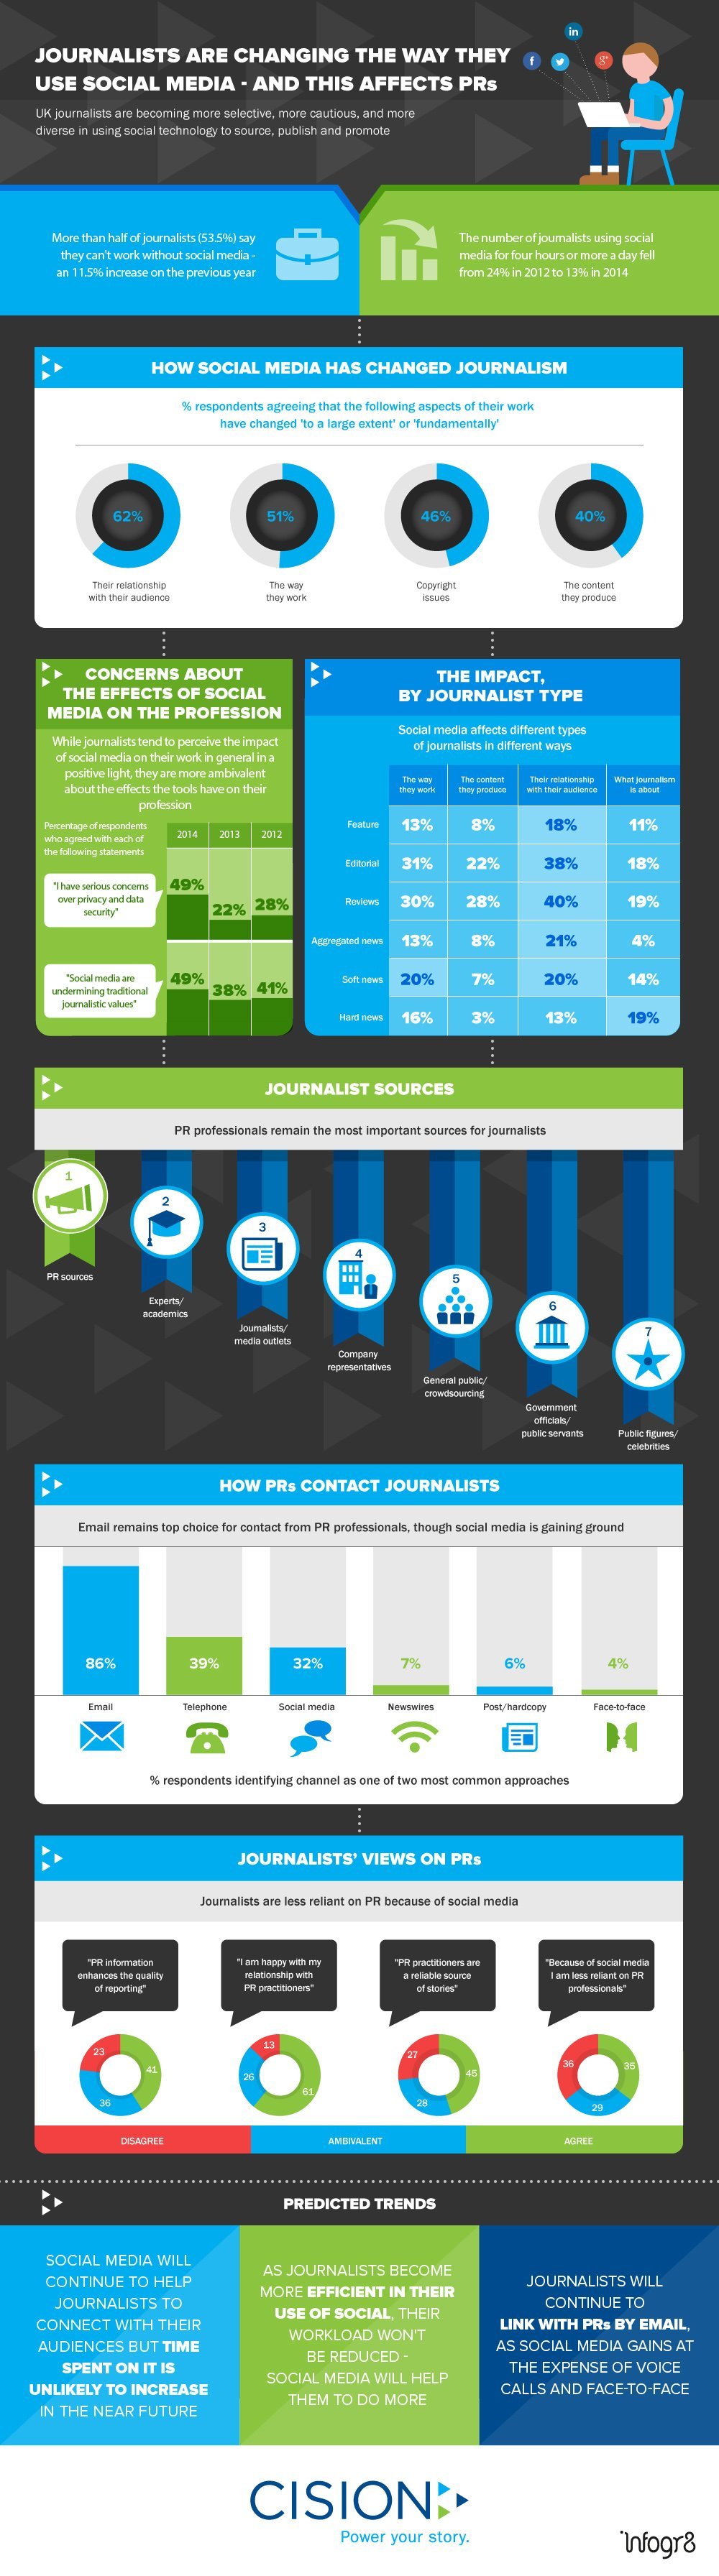 Social Journalism Study Infographic